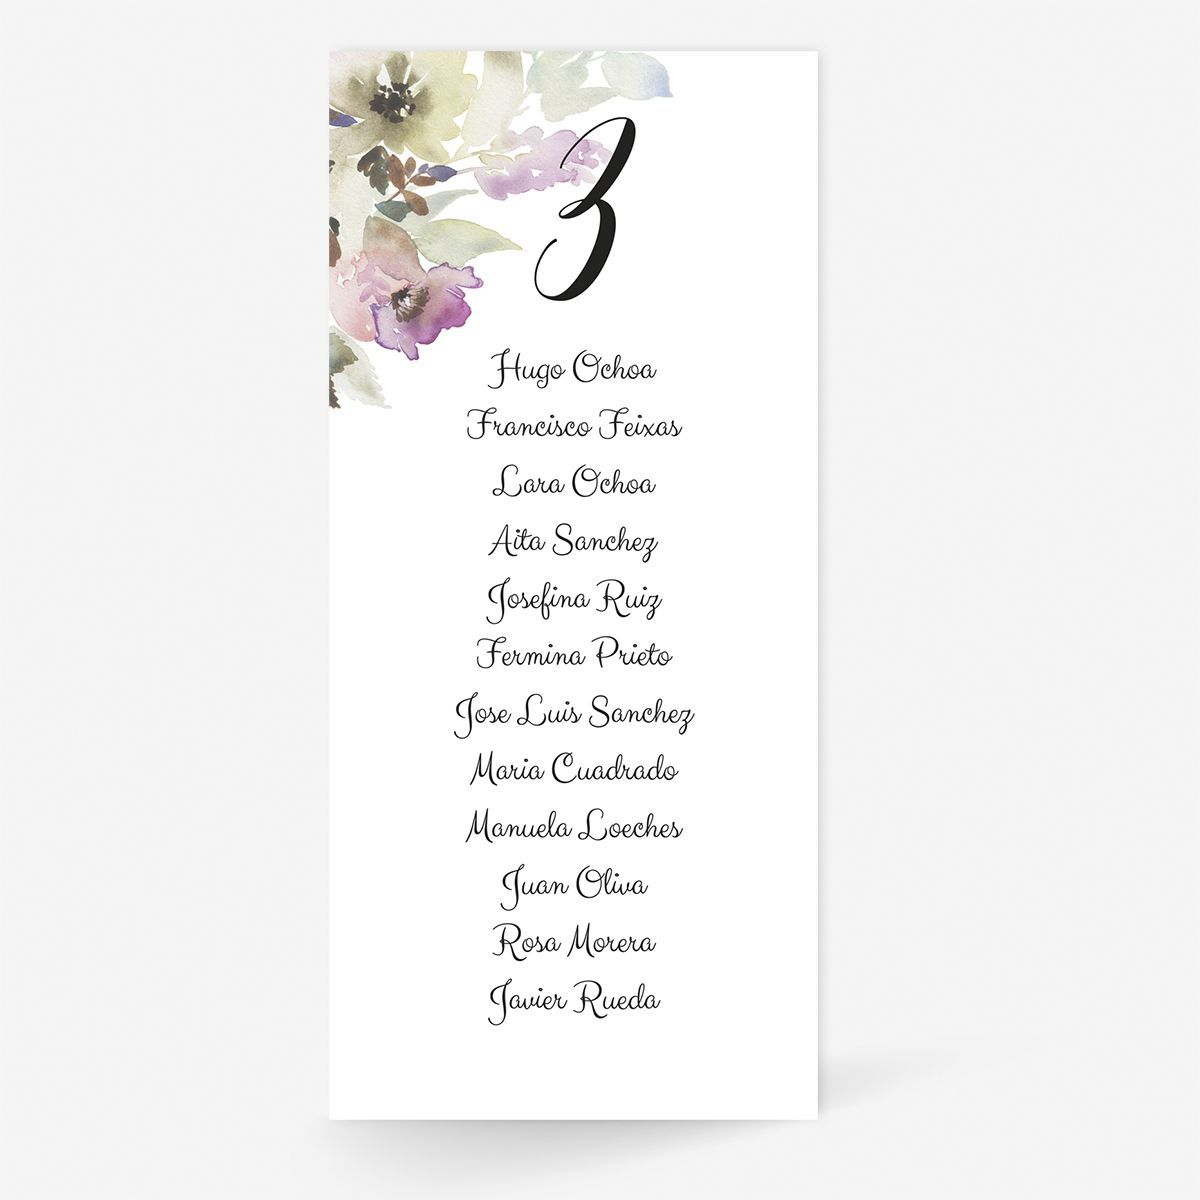 Plan de mesa (Seating plan) boda Lidia